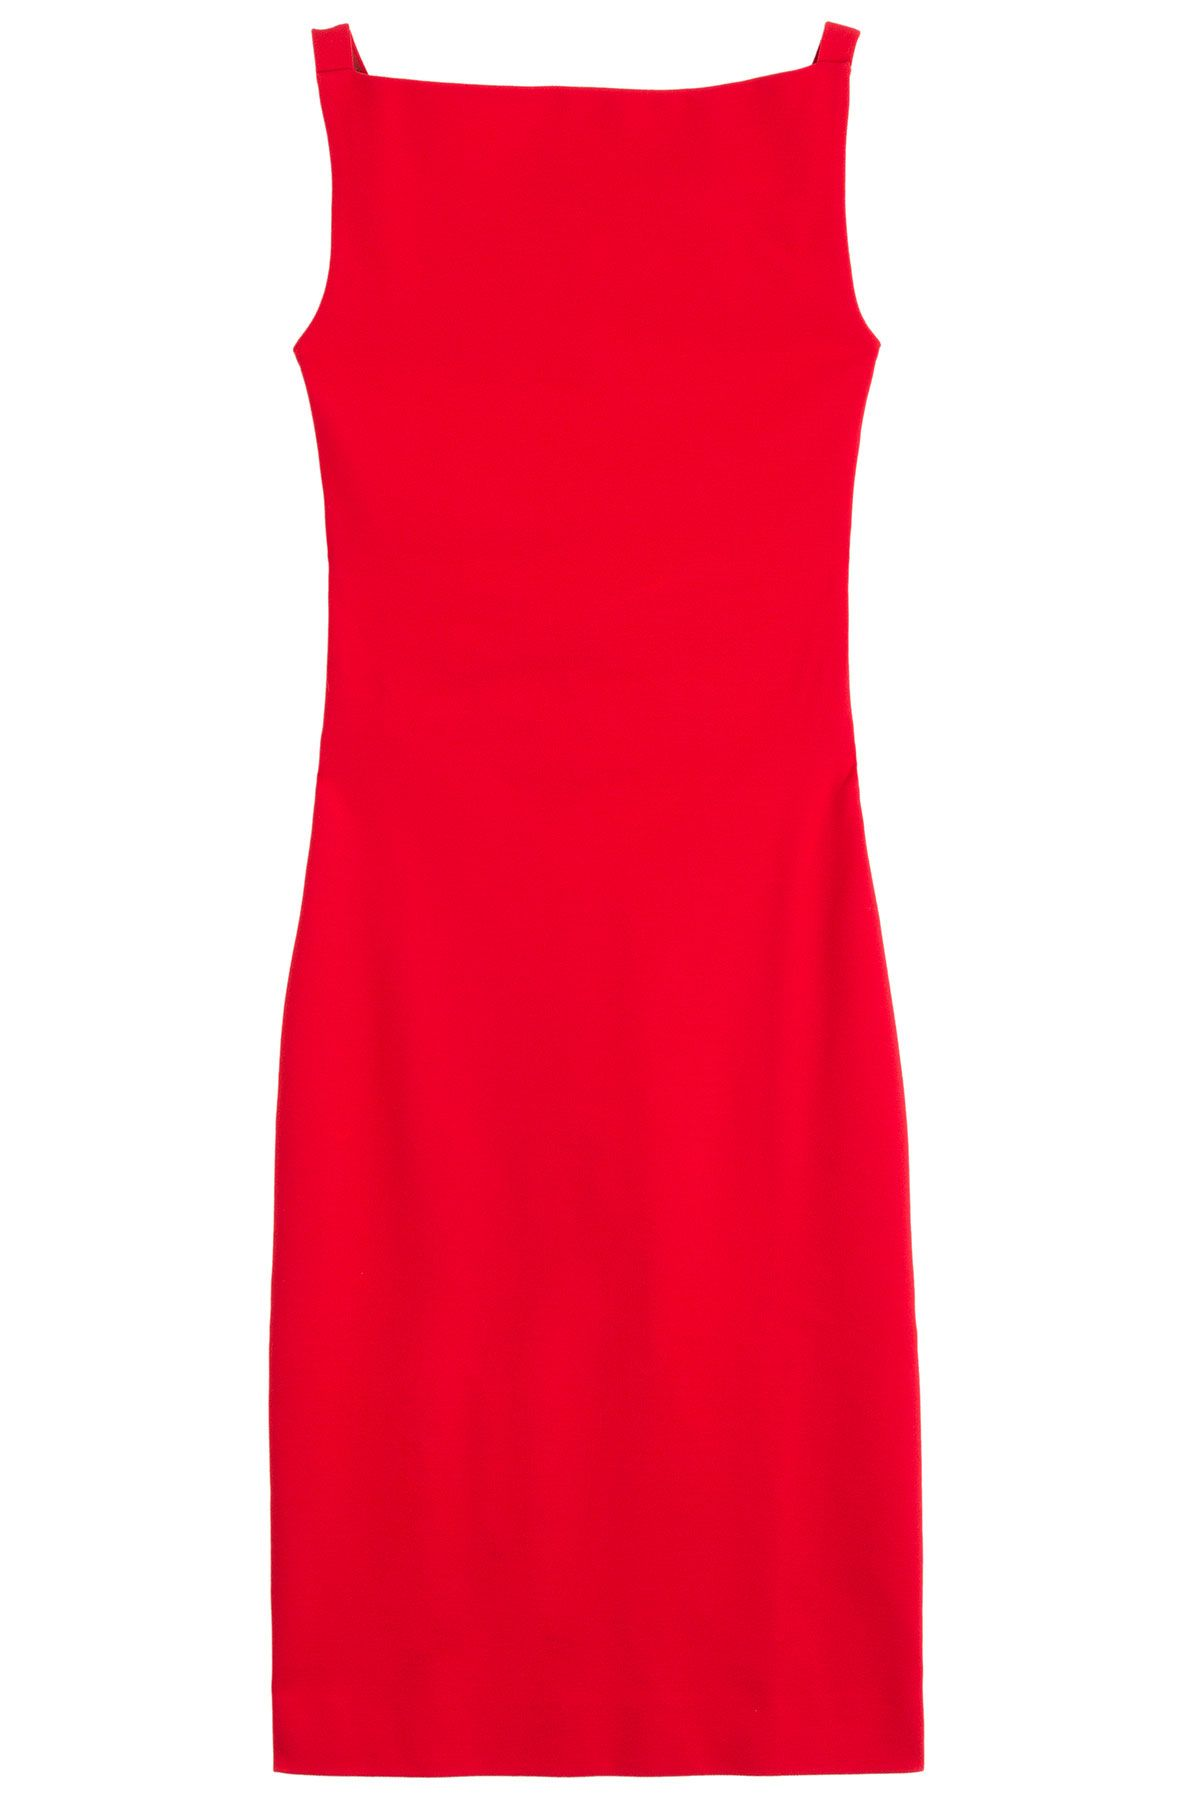 "<strong>DSquared2 </strong>dress, $655, <a target=""_blank"" href=""http://www.stylebop.com/product_details.php?id=589027"">stylebop.com</a>."